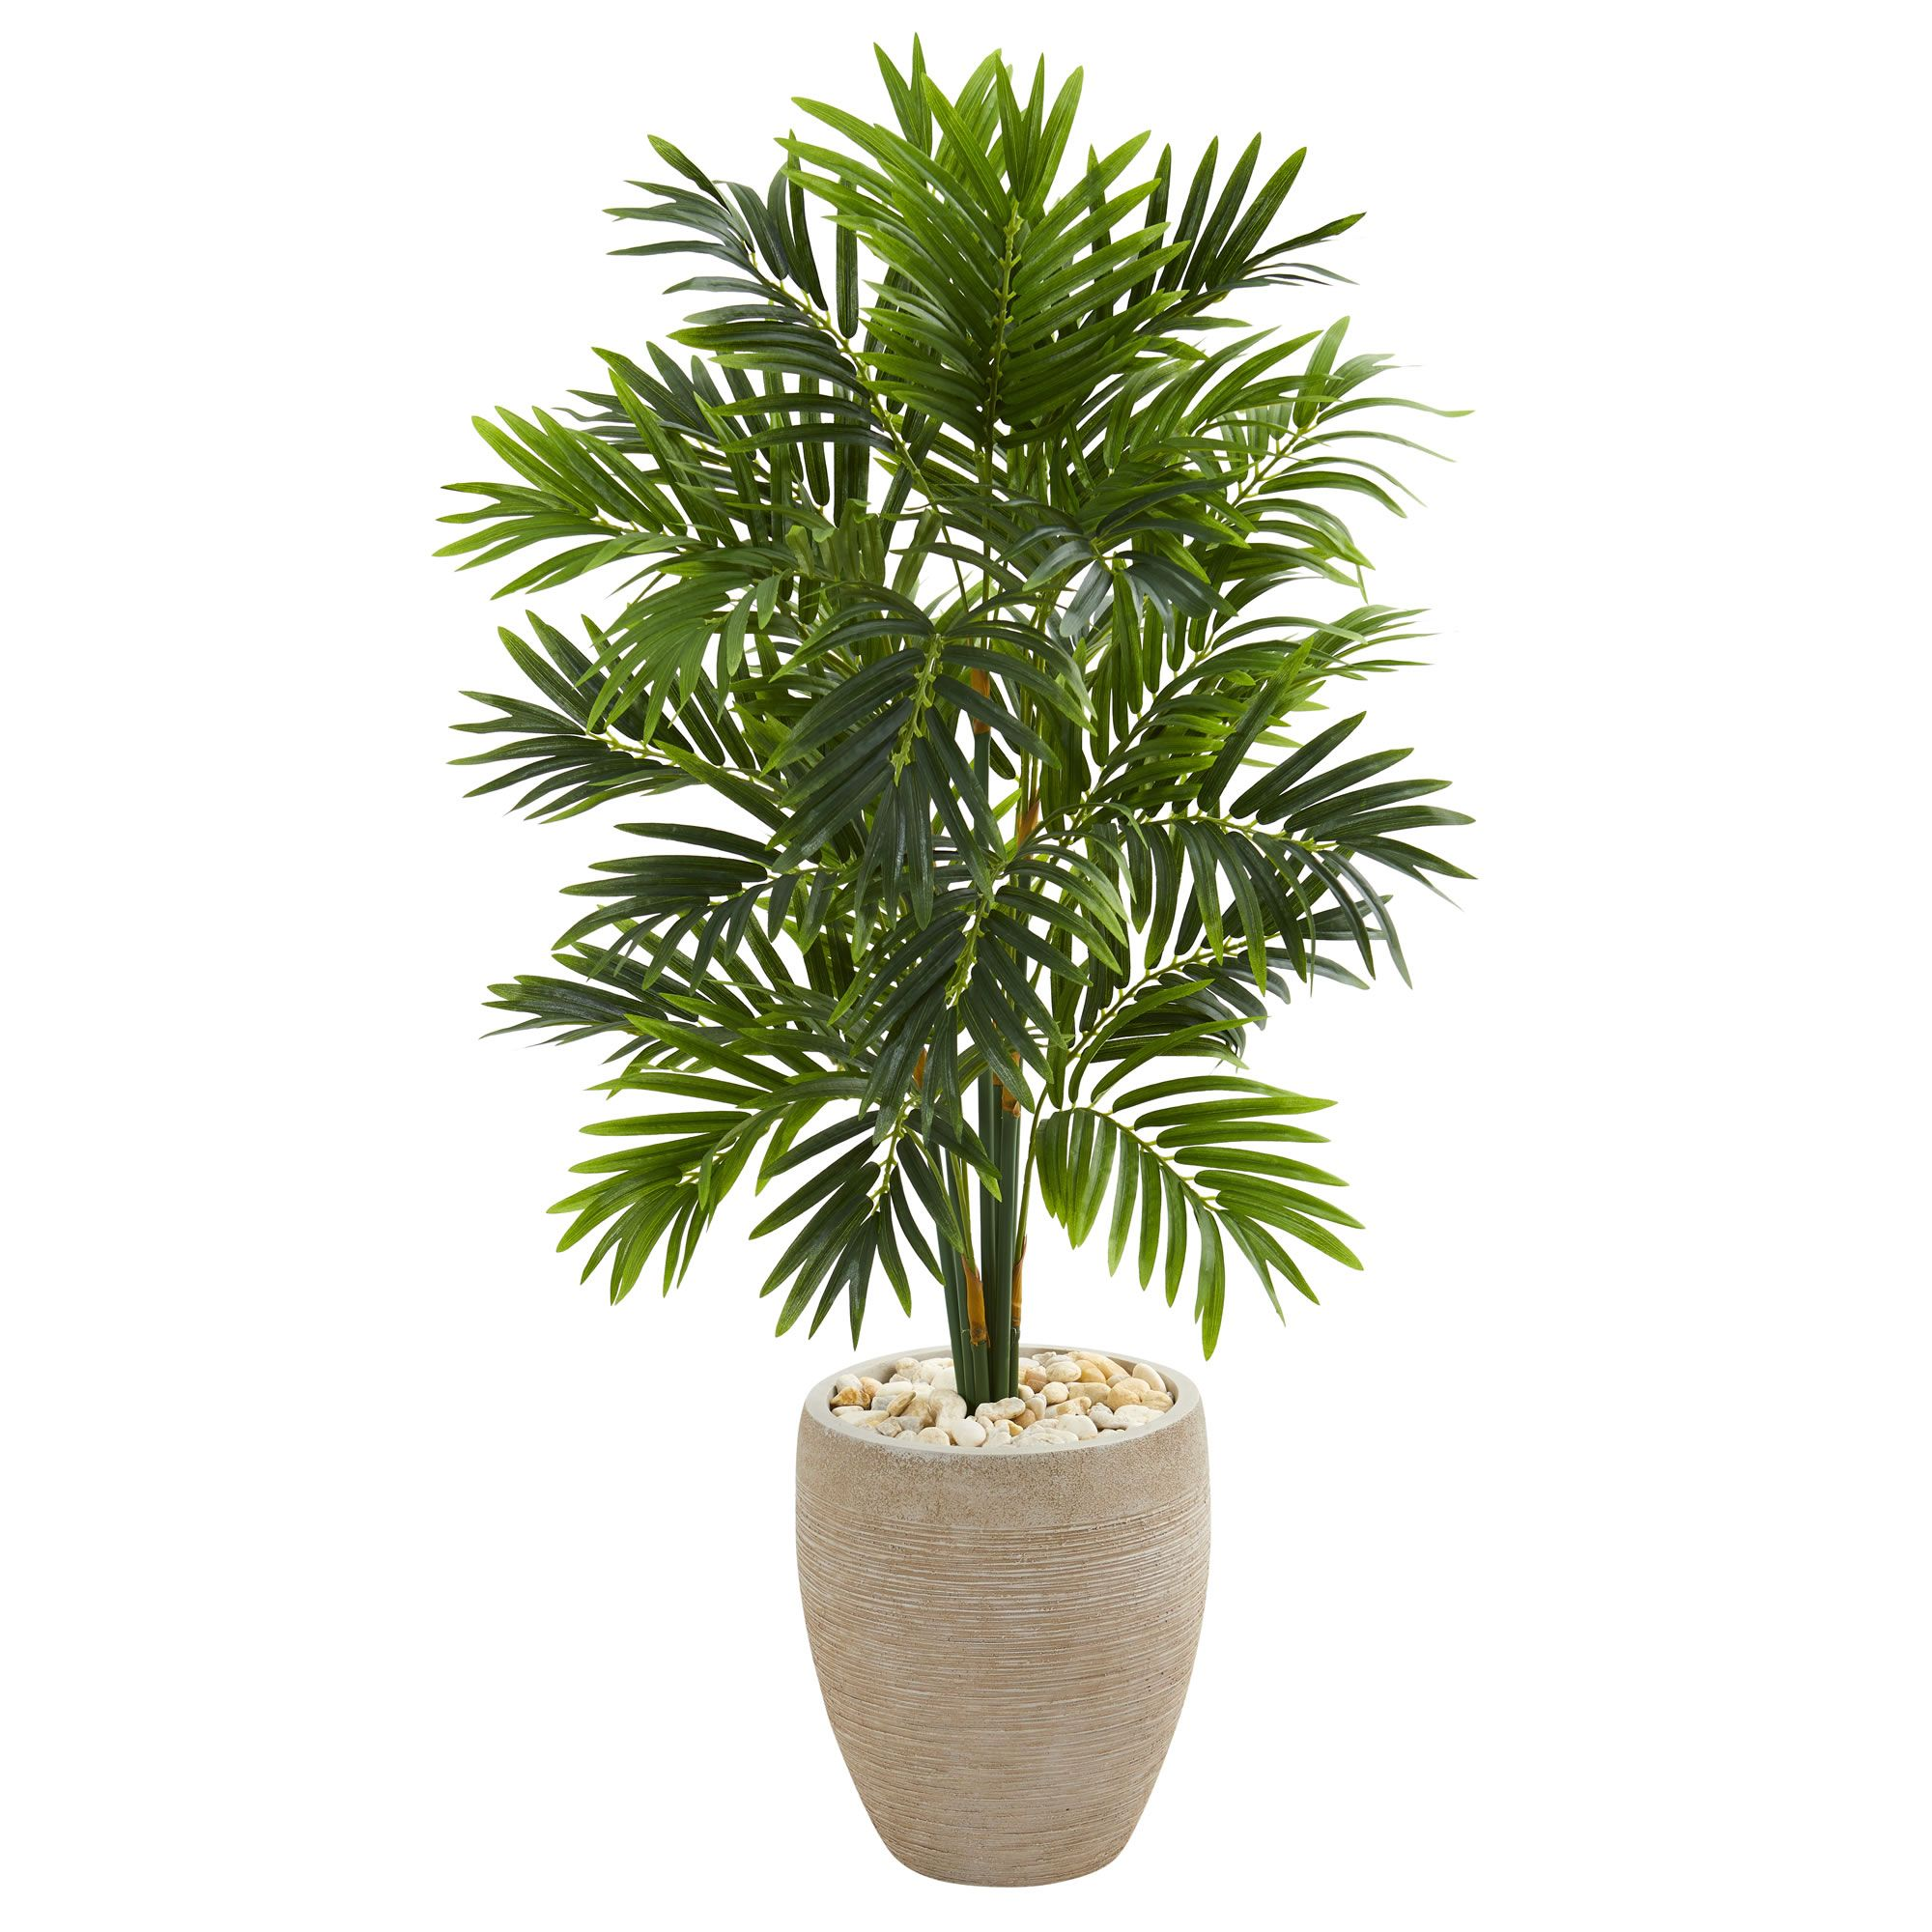 Made From The Finest Quality Of Materials, The Artificial Areca